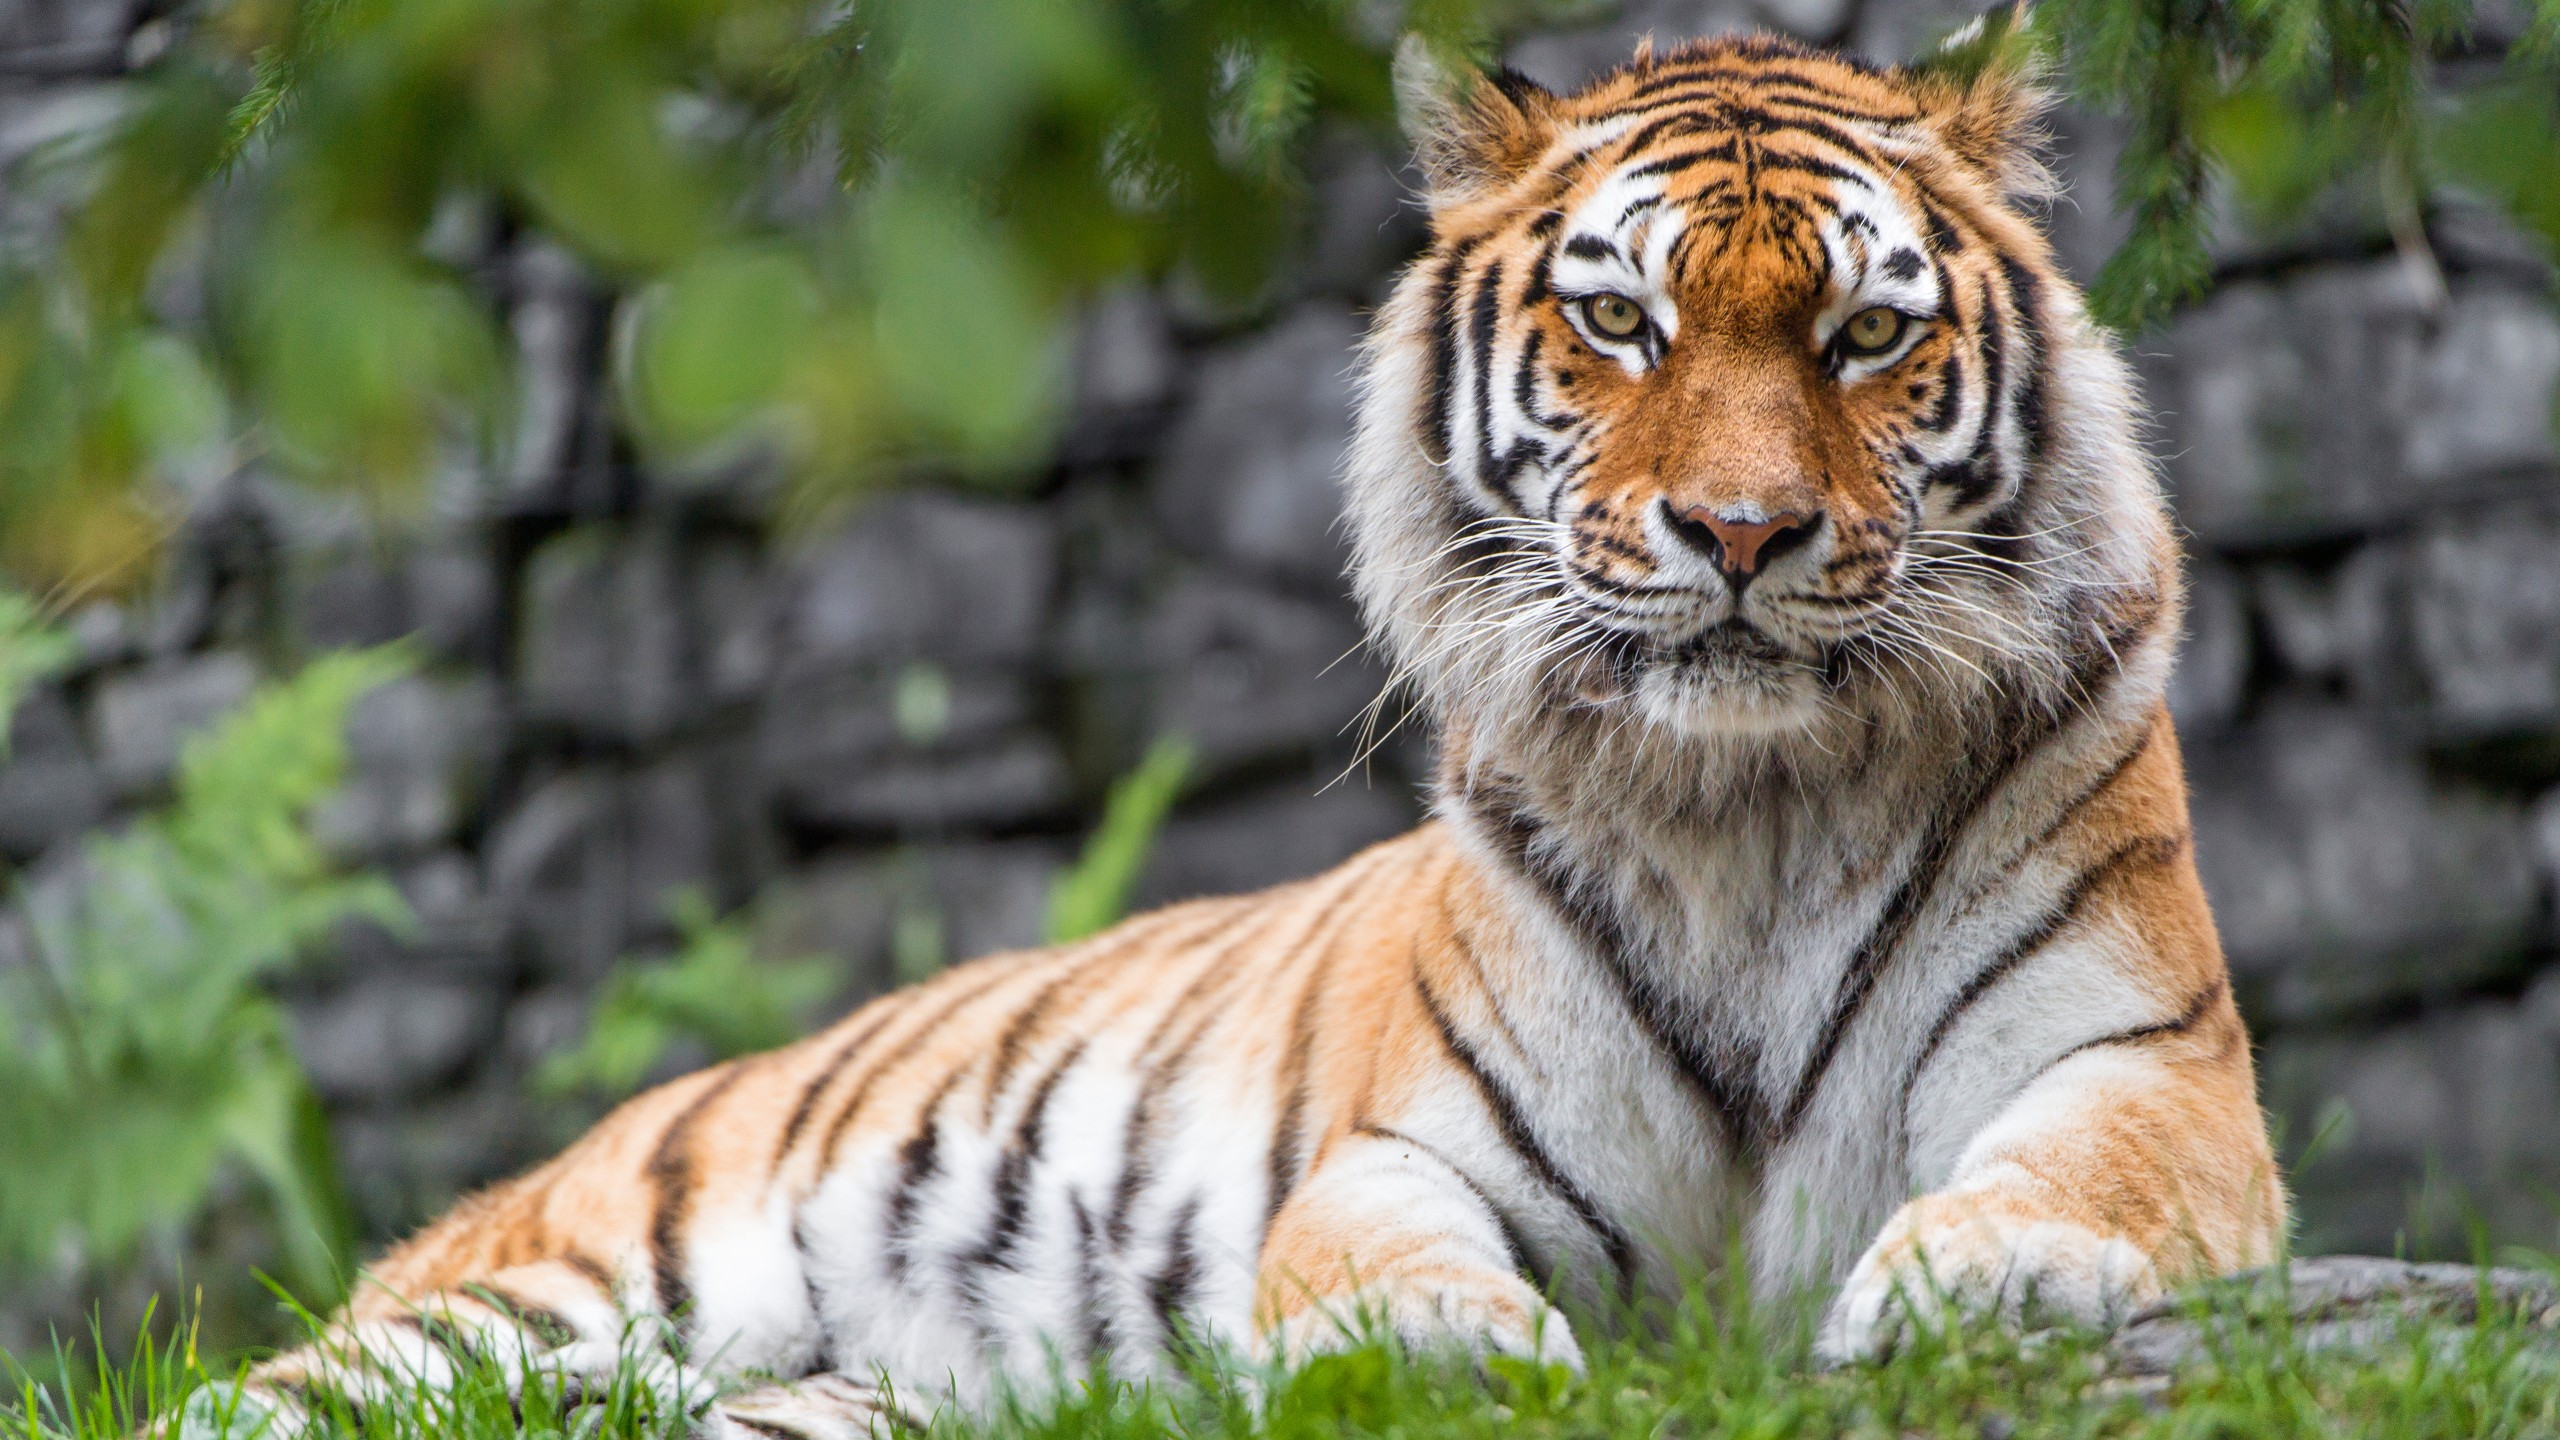 Real 3d Wallpaper For Android Zoo Tiger Wallpapers Hd Wallpapers Id 21100